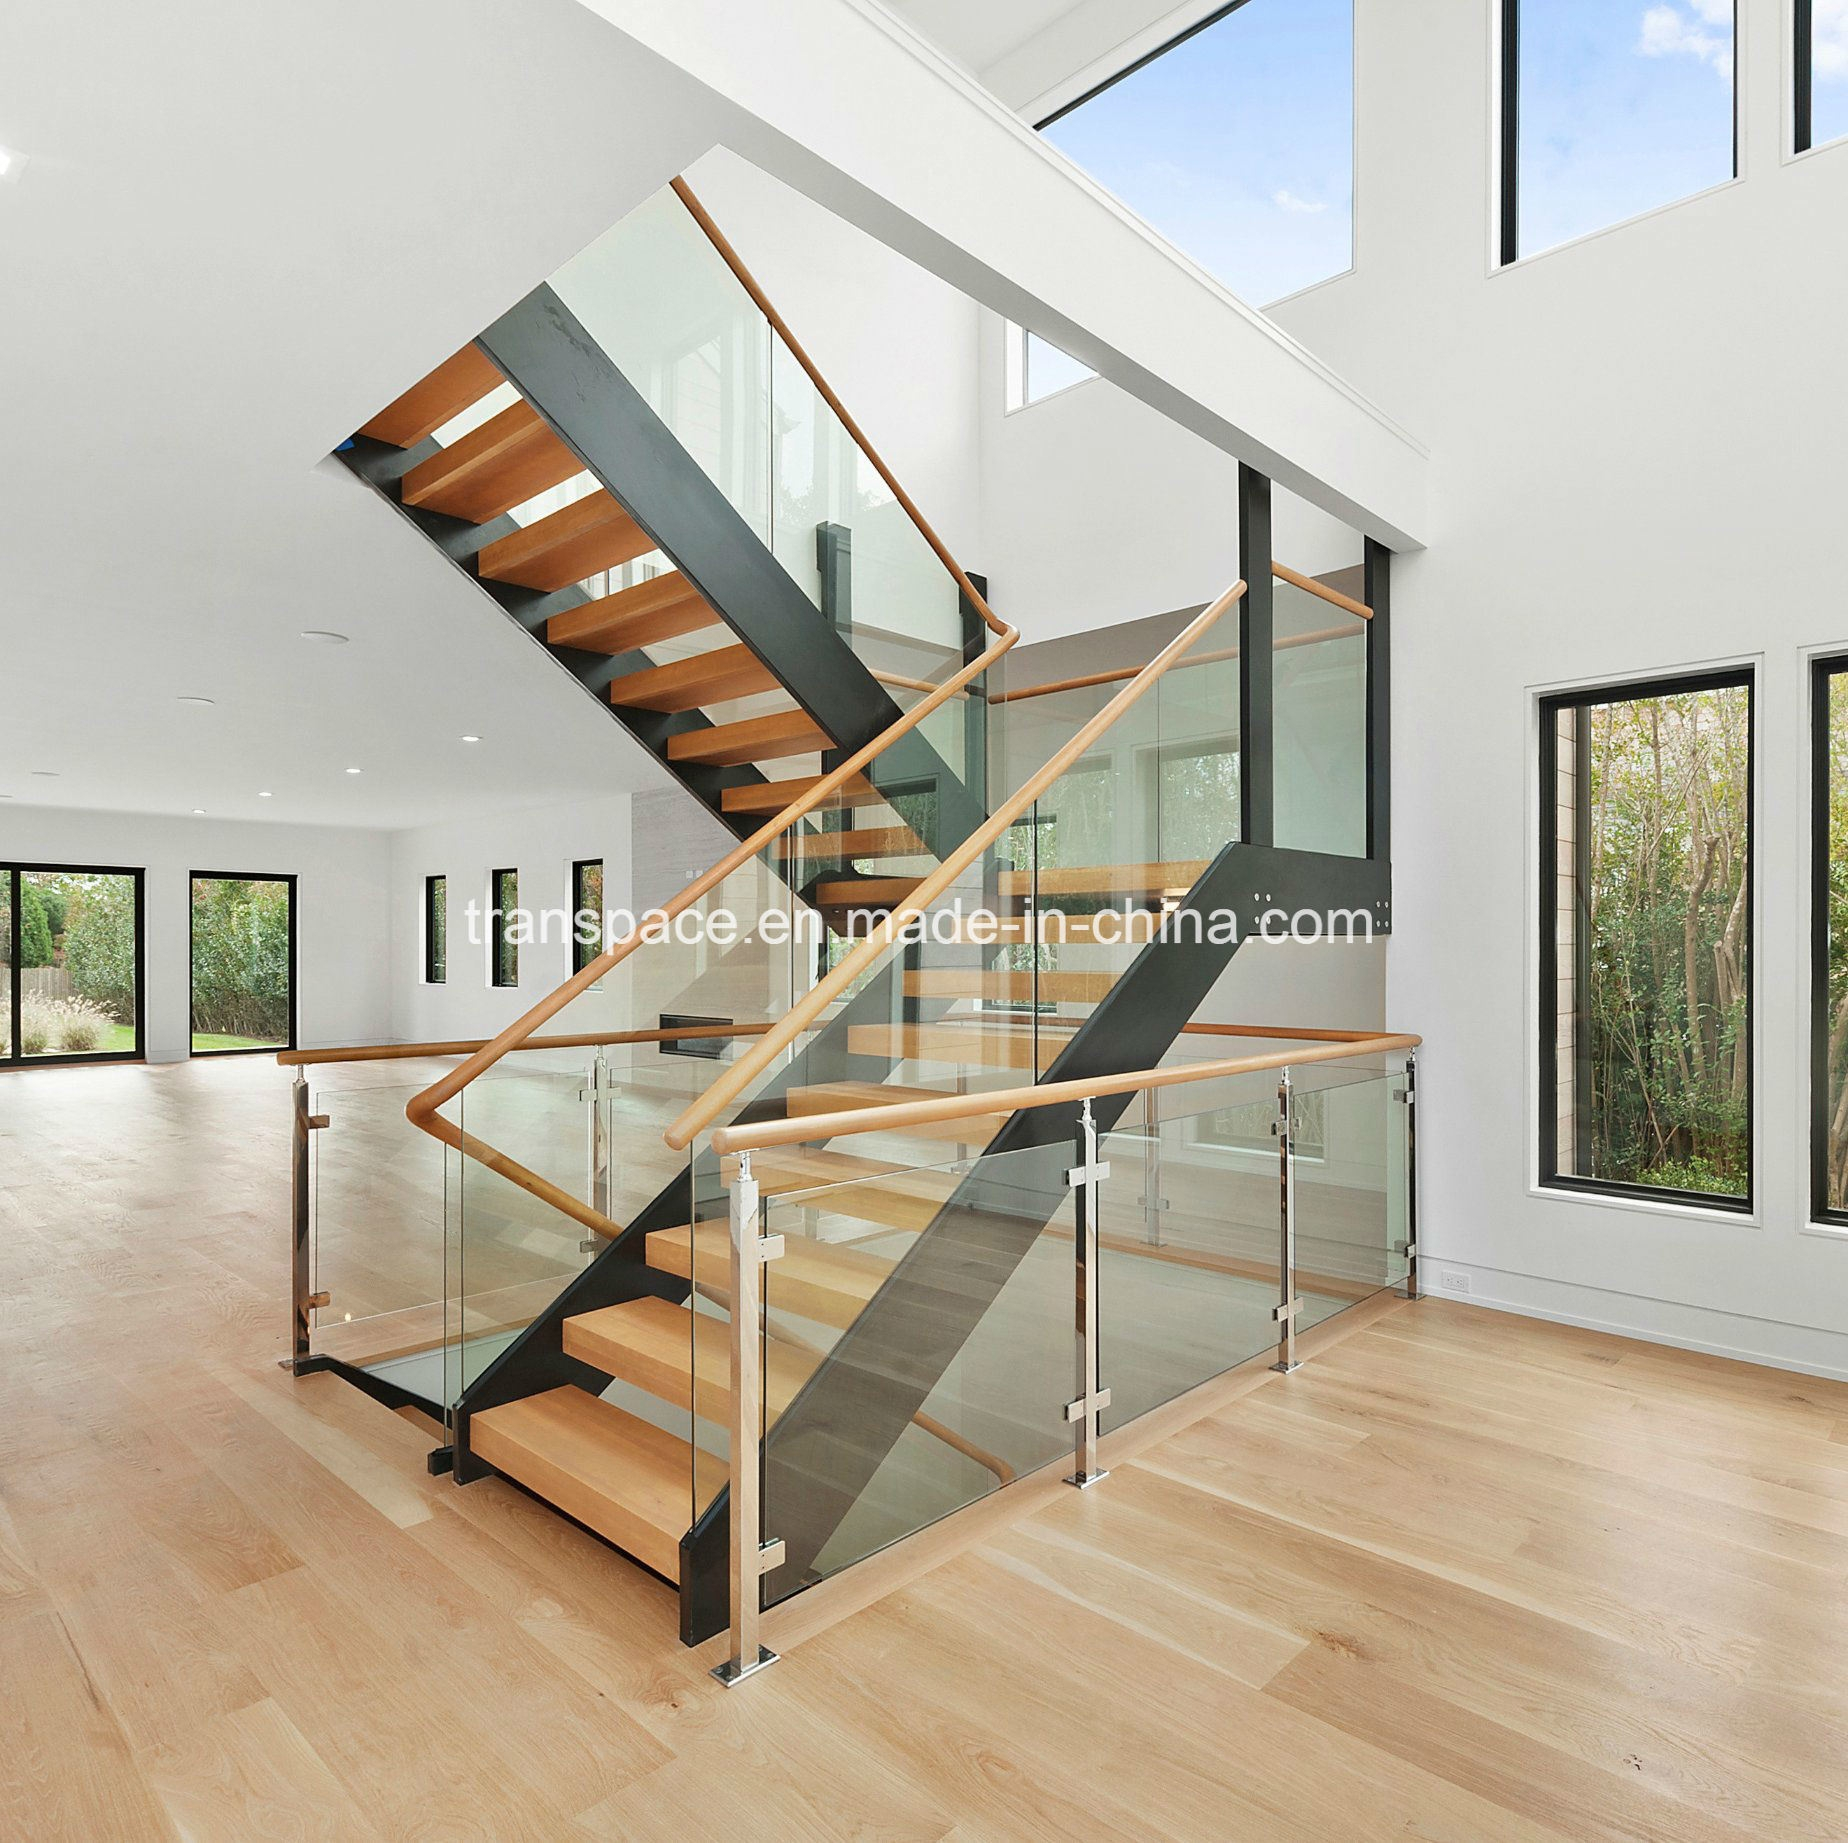 China Straight Steel Wood Stair With Tempered Glass | Wood And Glass Handrail